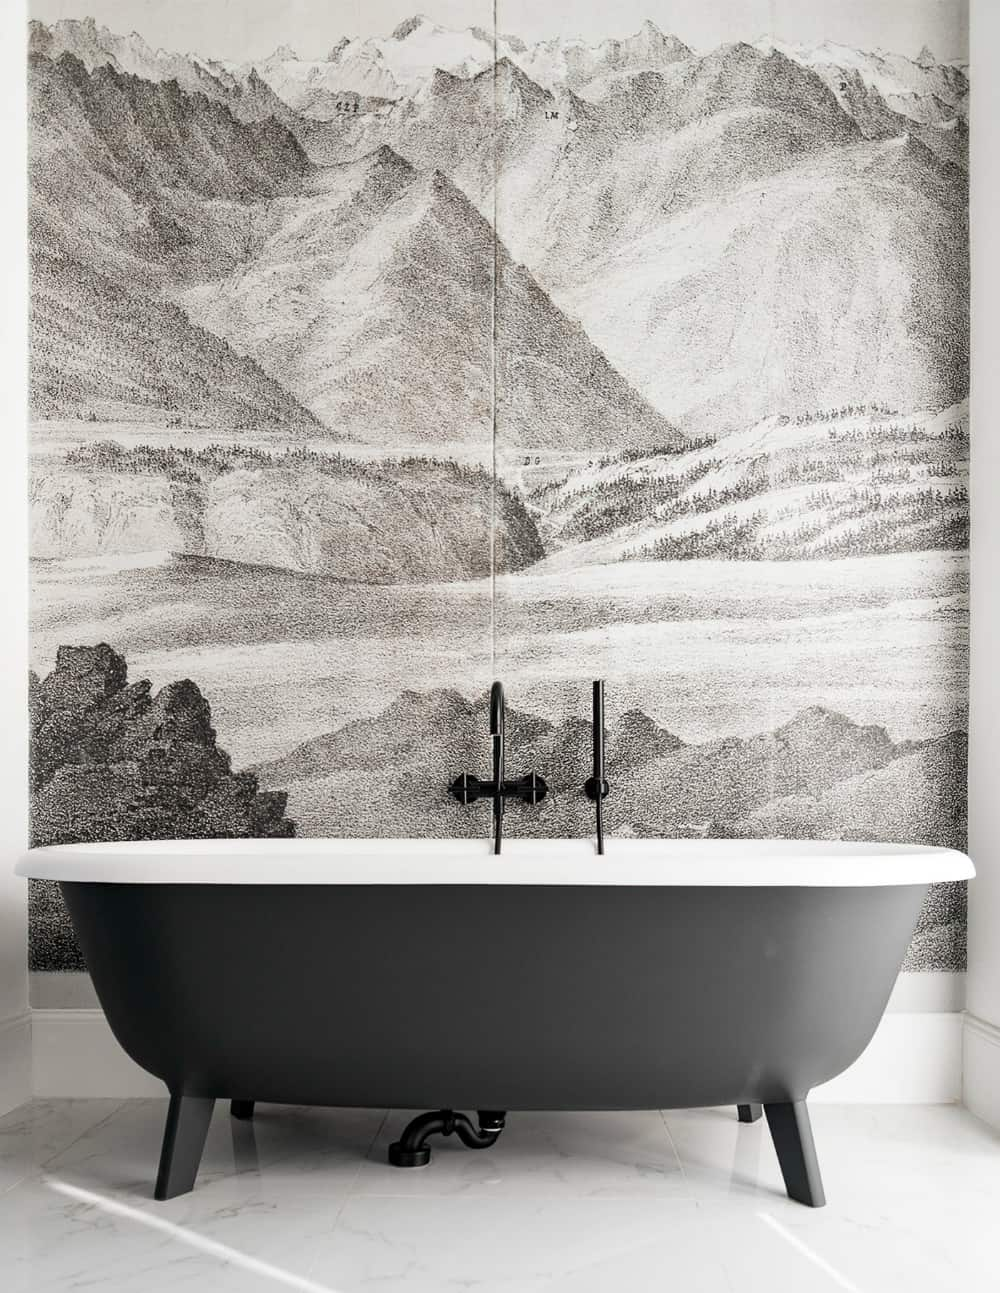 A freestanding tub never ceases to impress